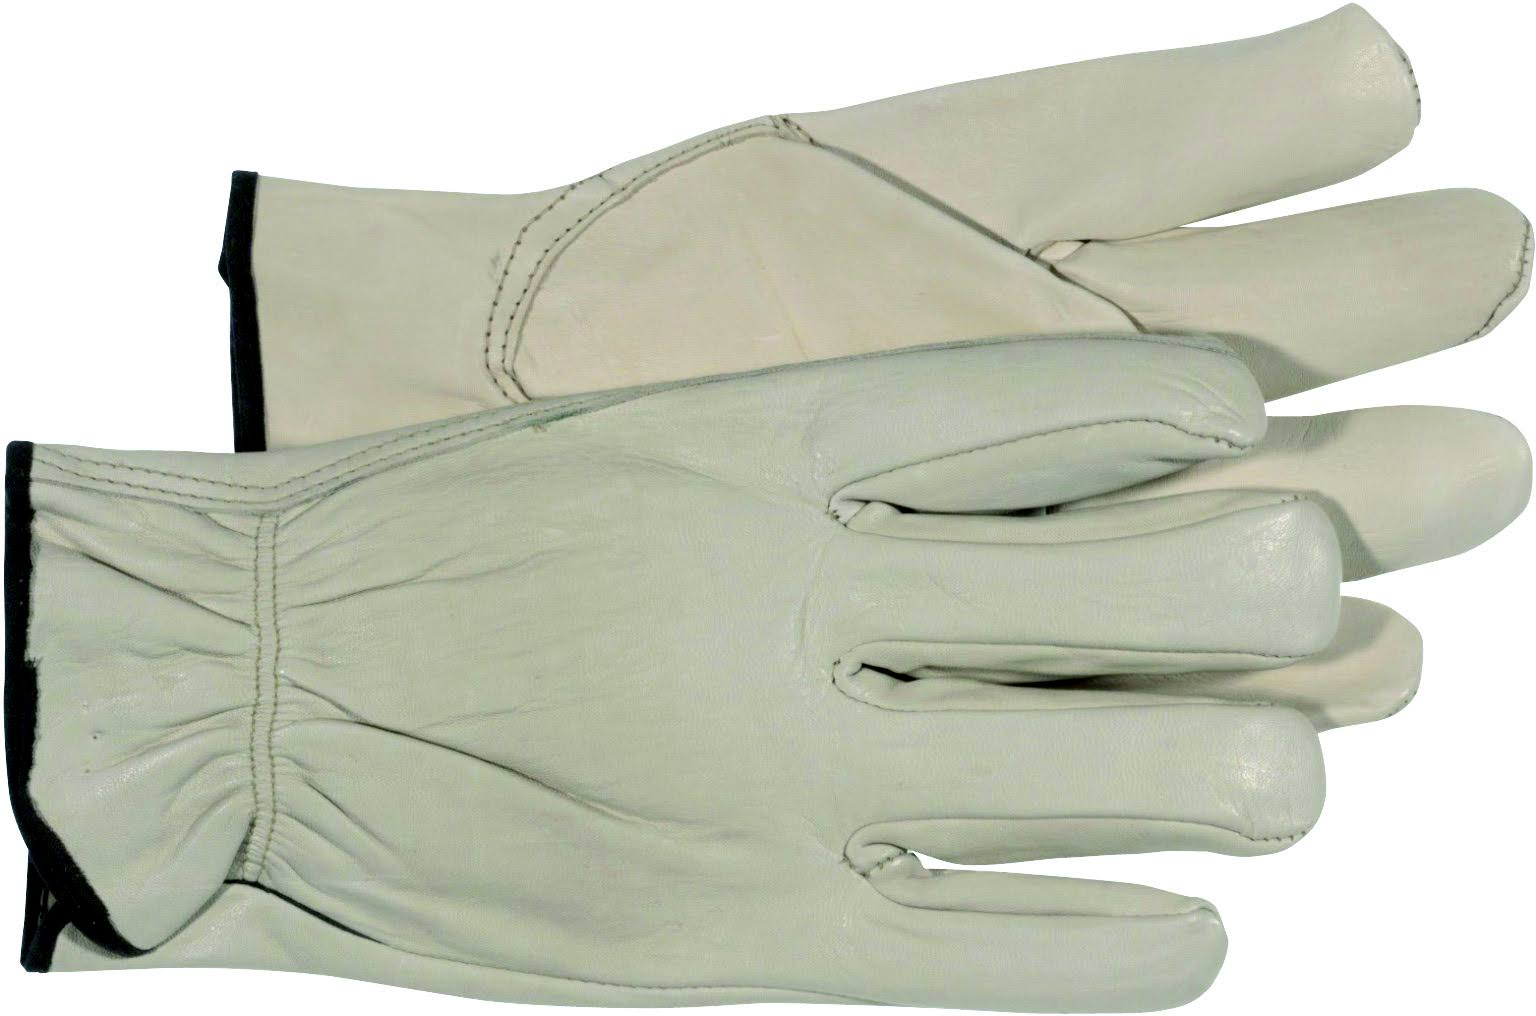 Boss Manufacturing Company 4068 Grain Leather Driver Work Gloves - Medium